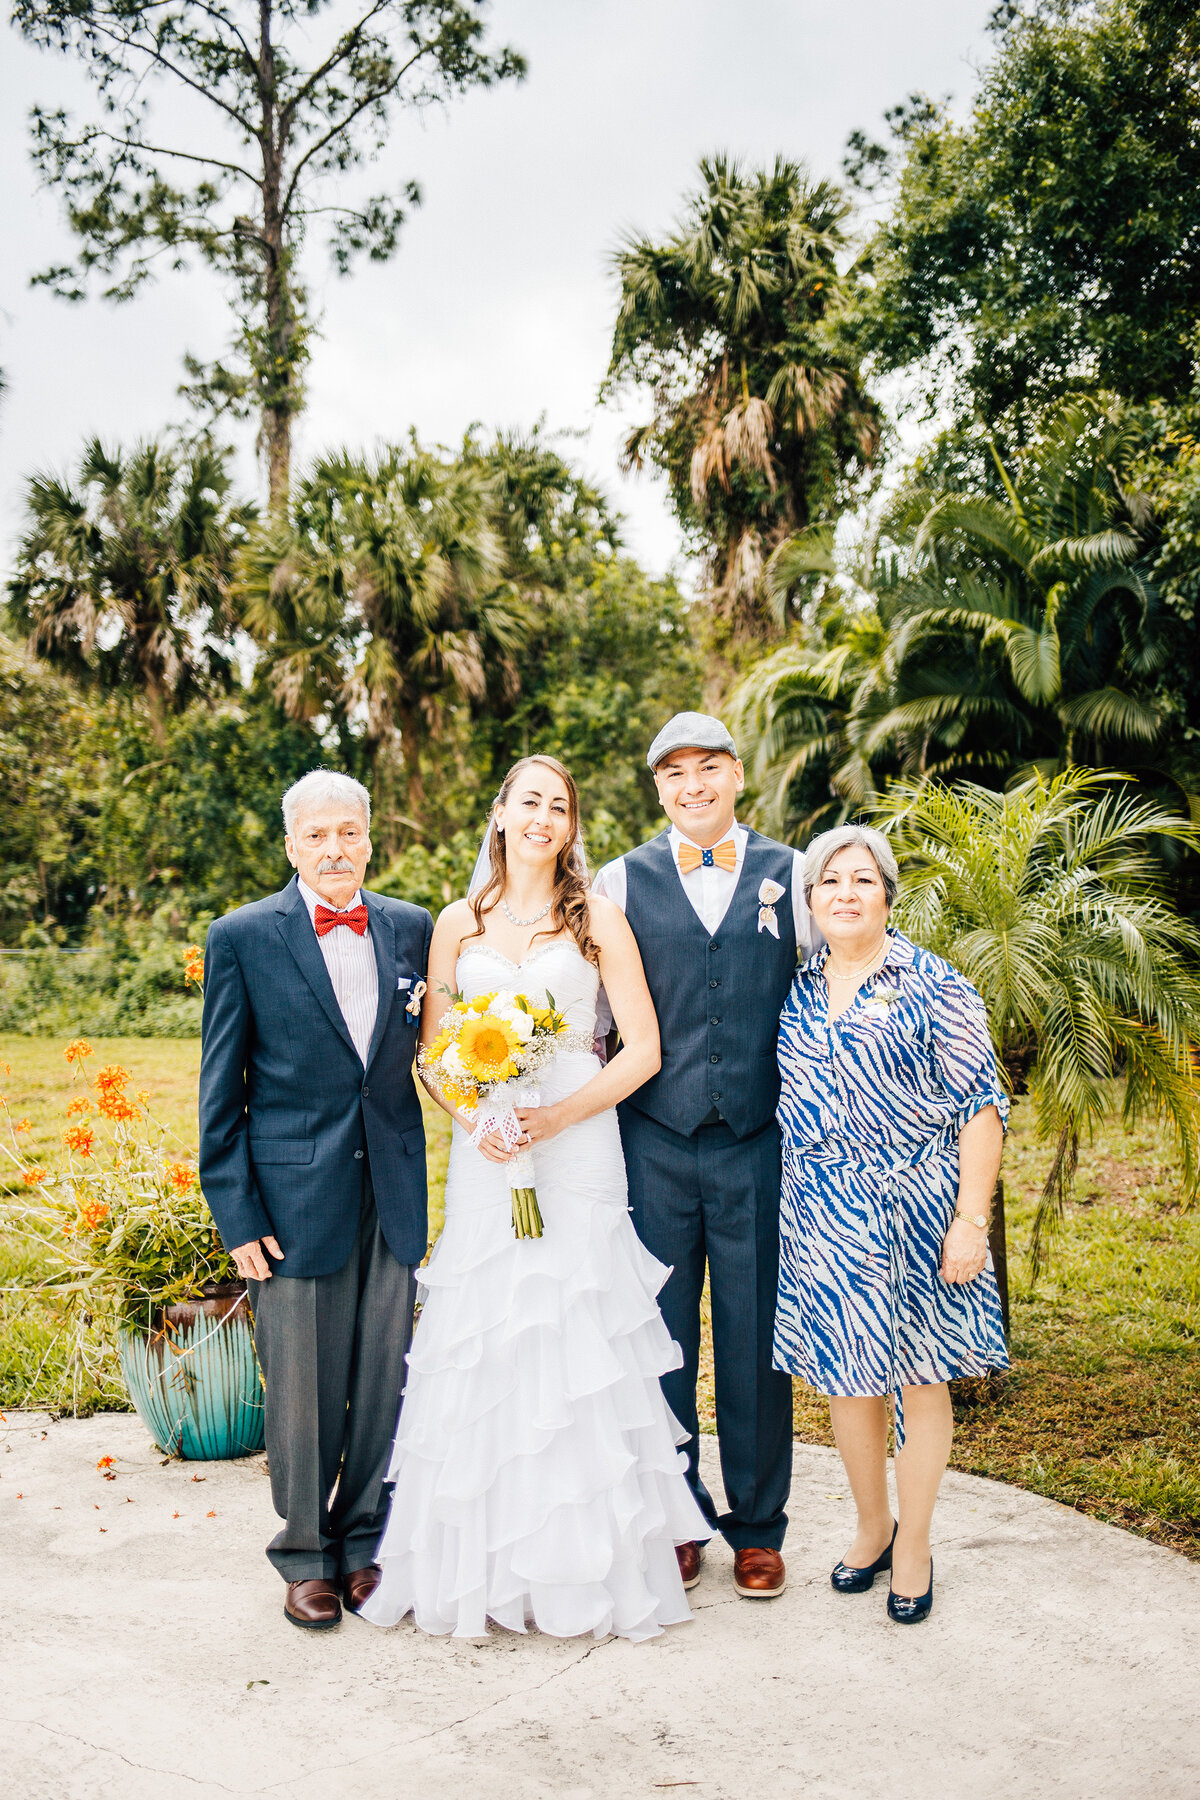 Kimberly_Hoyle_Photography_Marrero_Millikens_Reef_Wedding-23